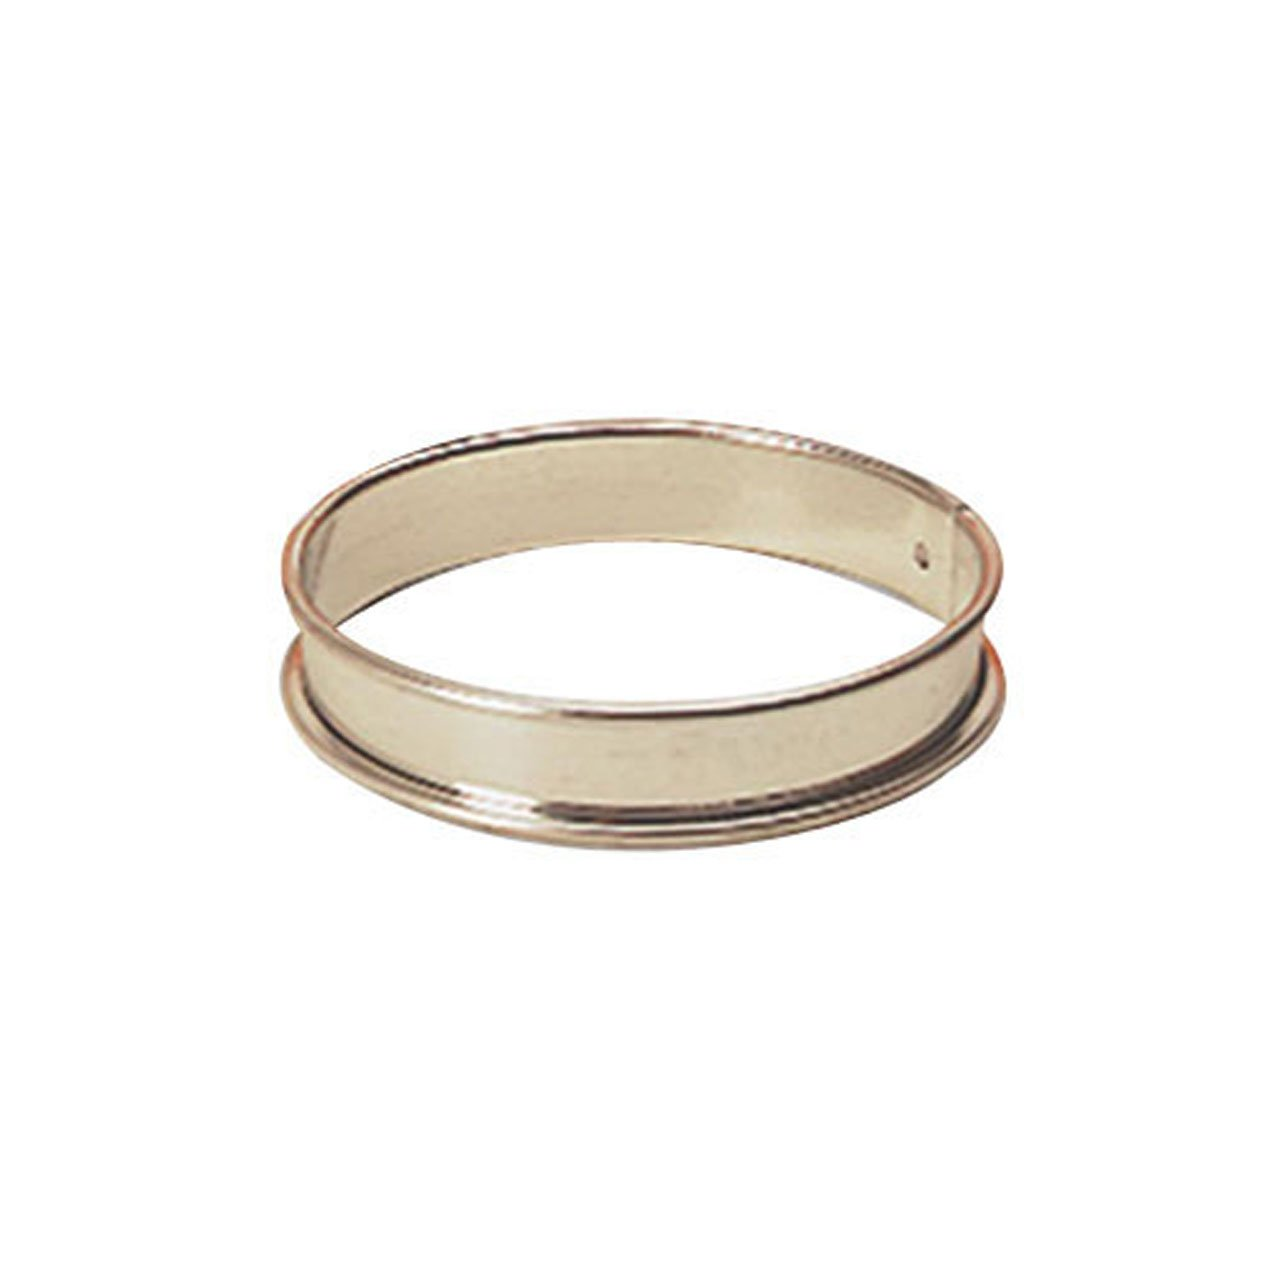 World Cuisine Pastry Ring, Tart Dia 3 1/8 X H 3/4 Browne Foodservice 80 824920